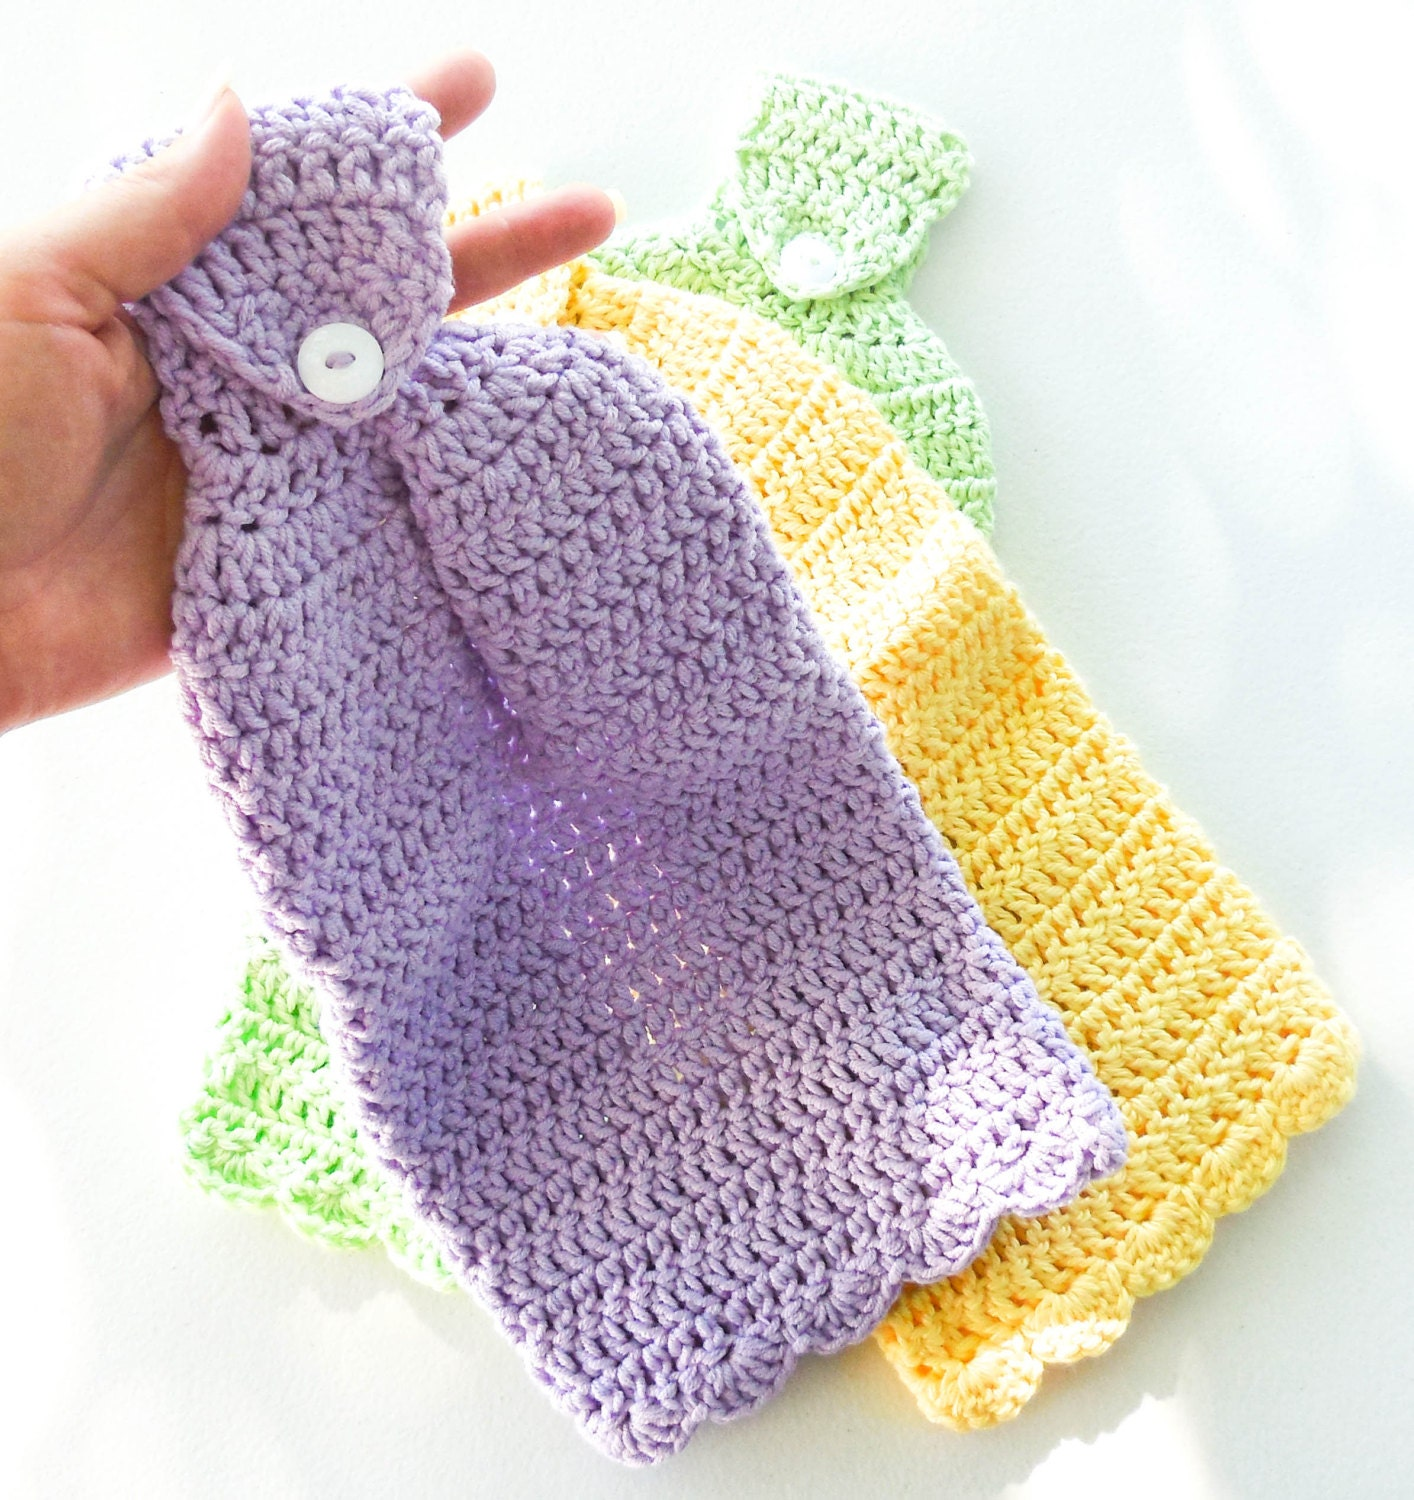 Crochet Hanging Dish Towel Set Of 1 Cotton Kitchen Towel